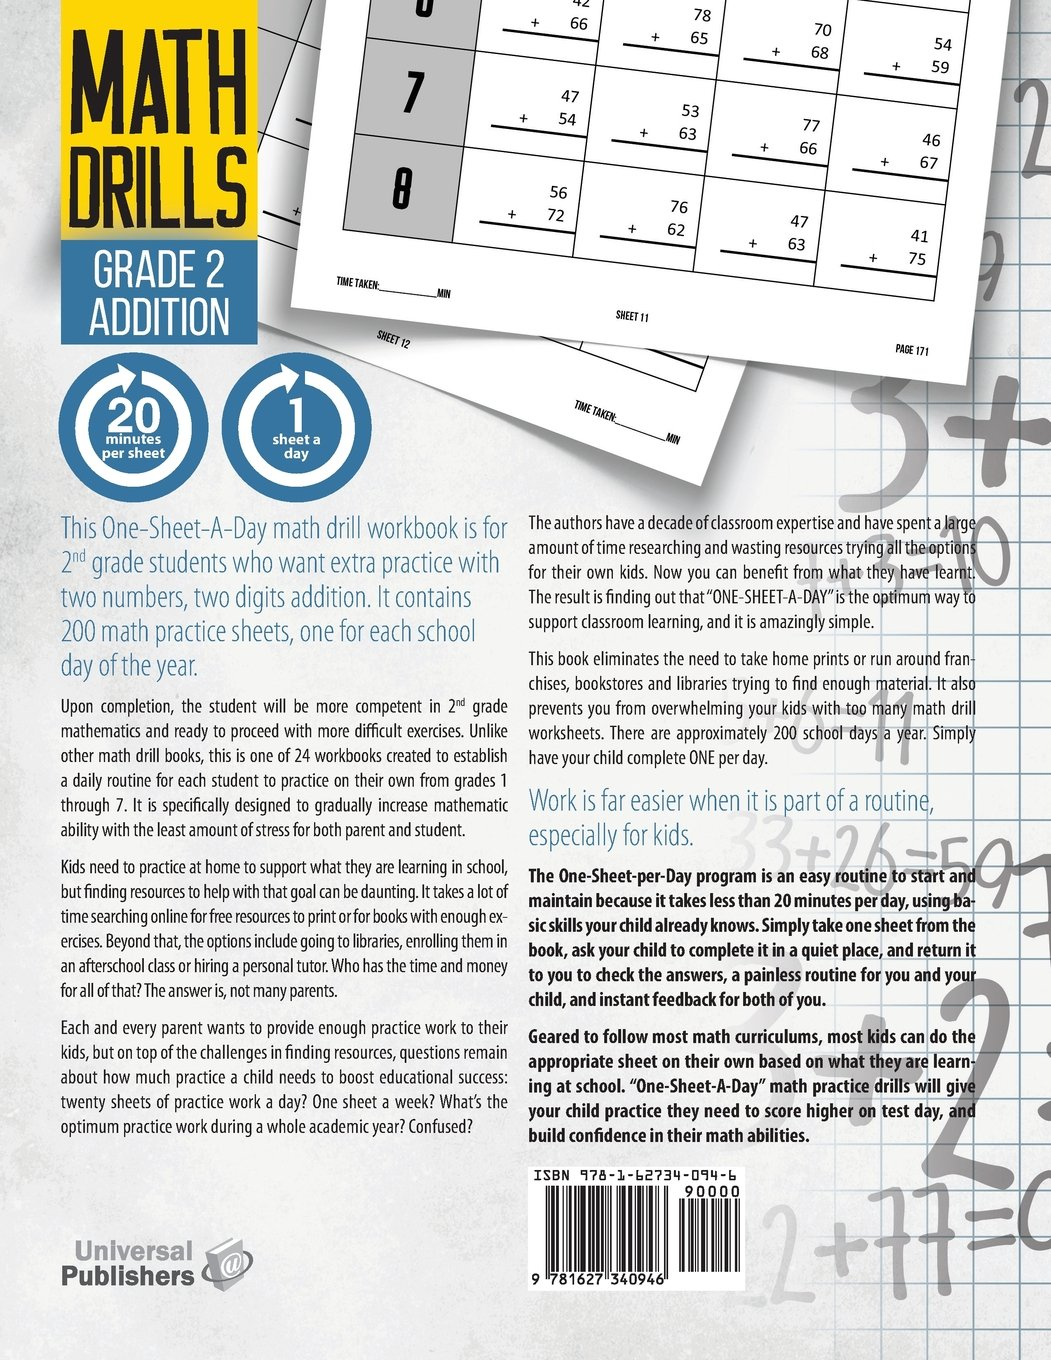 Buy One-Sheet-A-Day Math Drills: Grade 2 Addition - 200 Worksheets ...